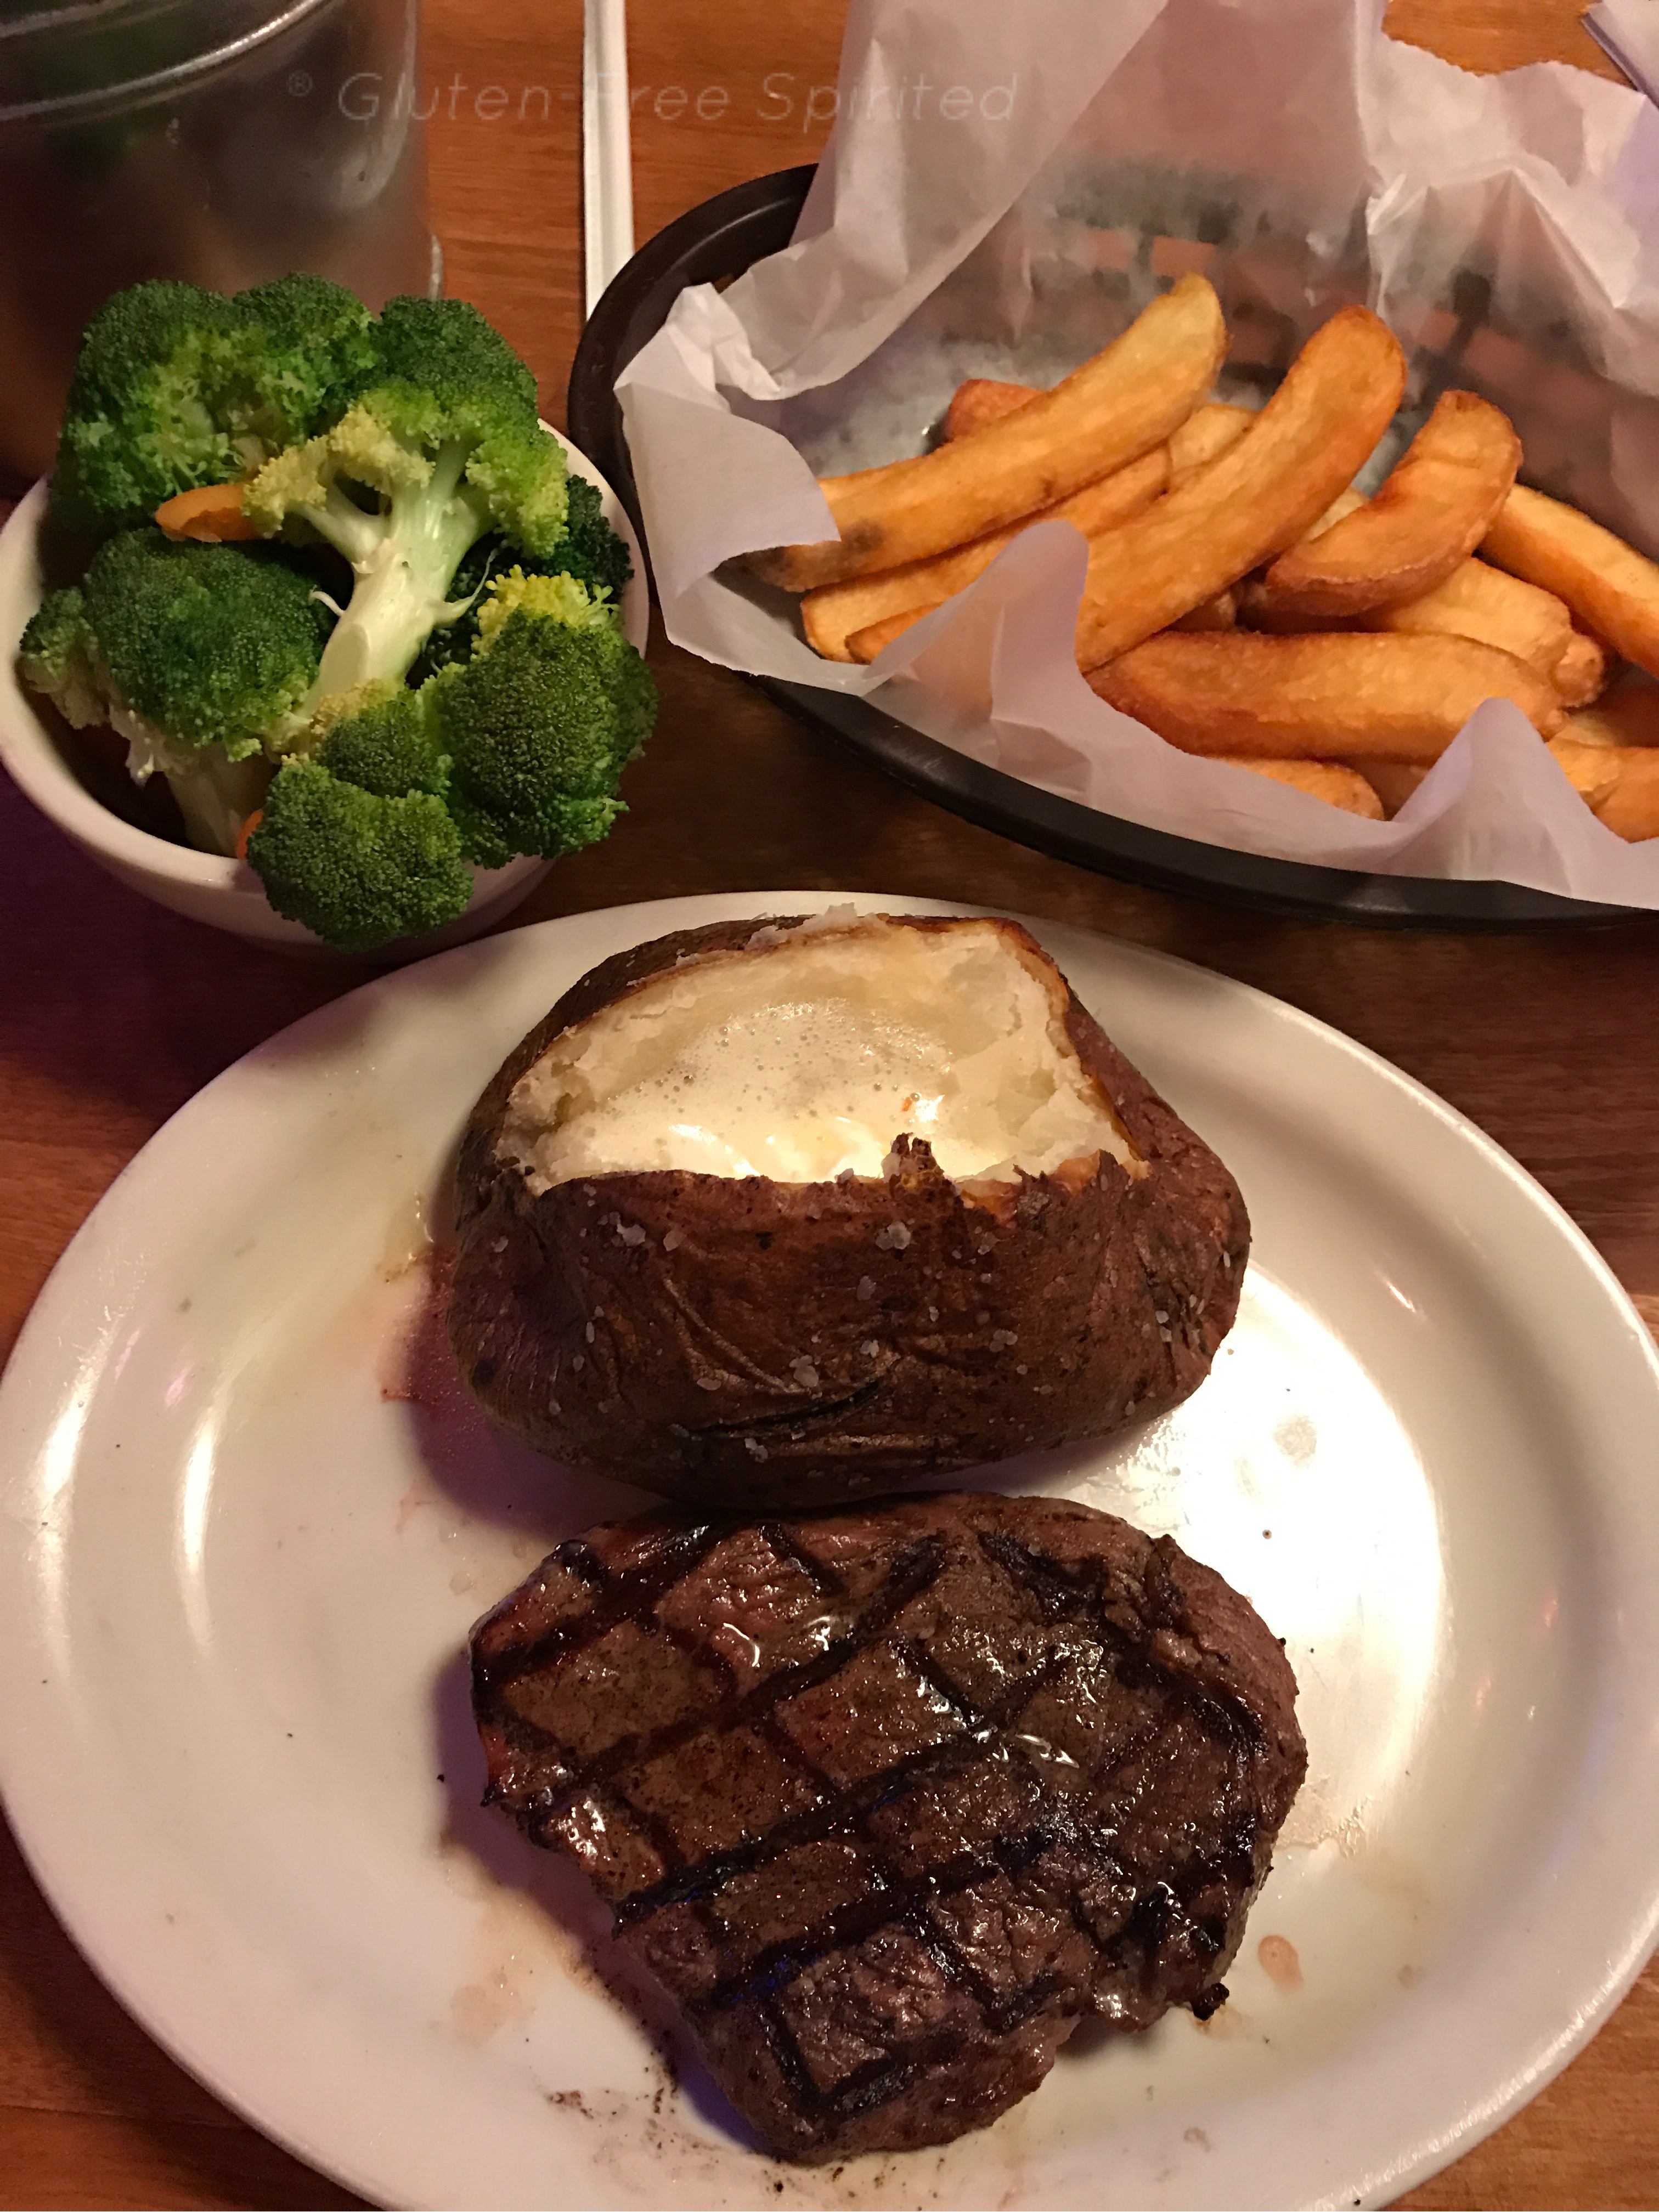 An image of steak, baked potato, broccoli & carrots, and french fries.